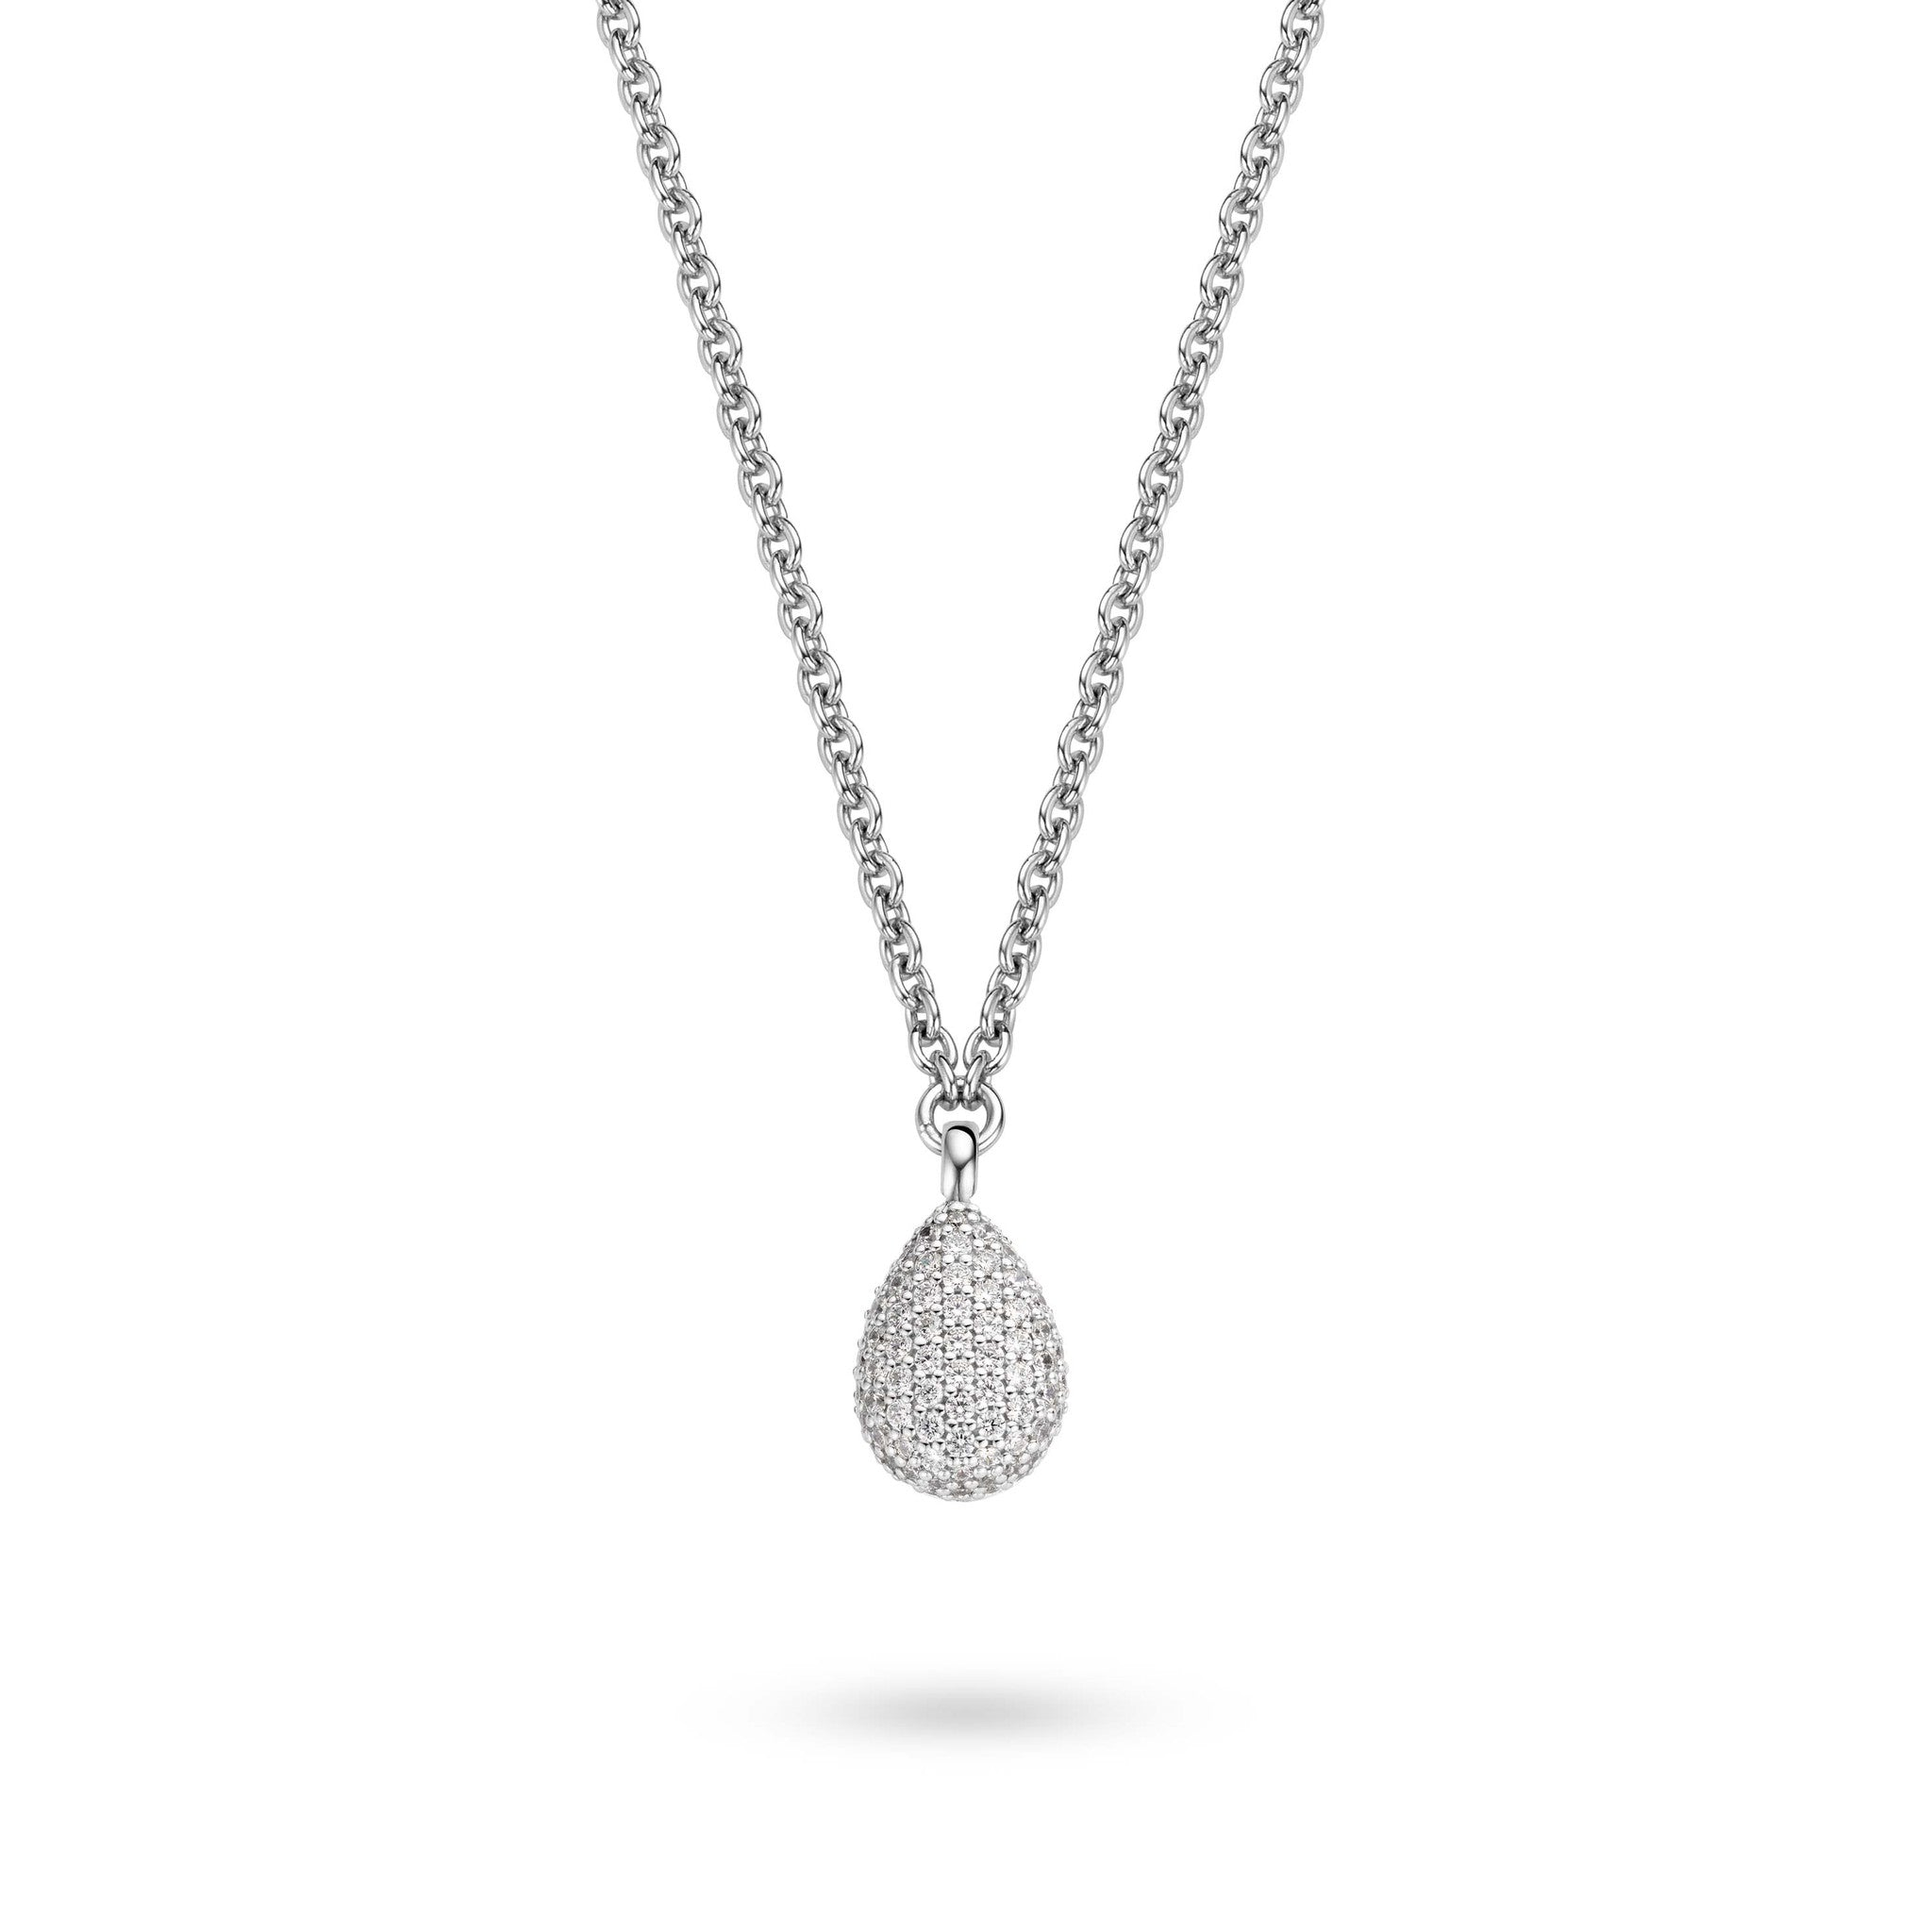 Ti Sento Necklace Silver And White Cubic Zirconia Pear Drop